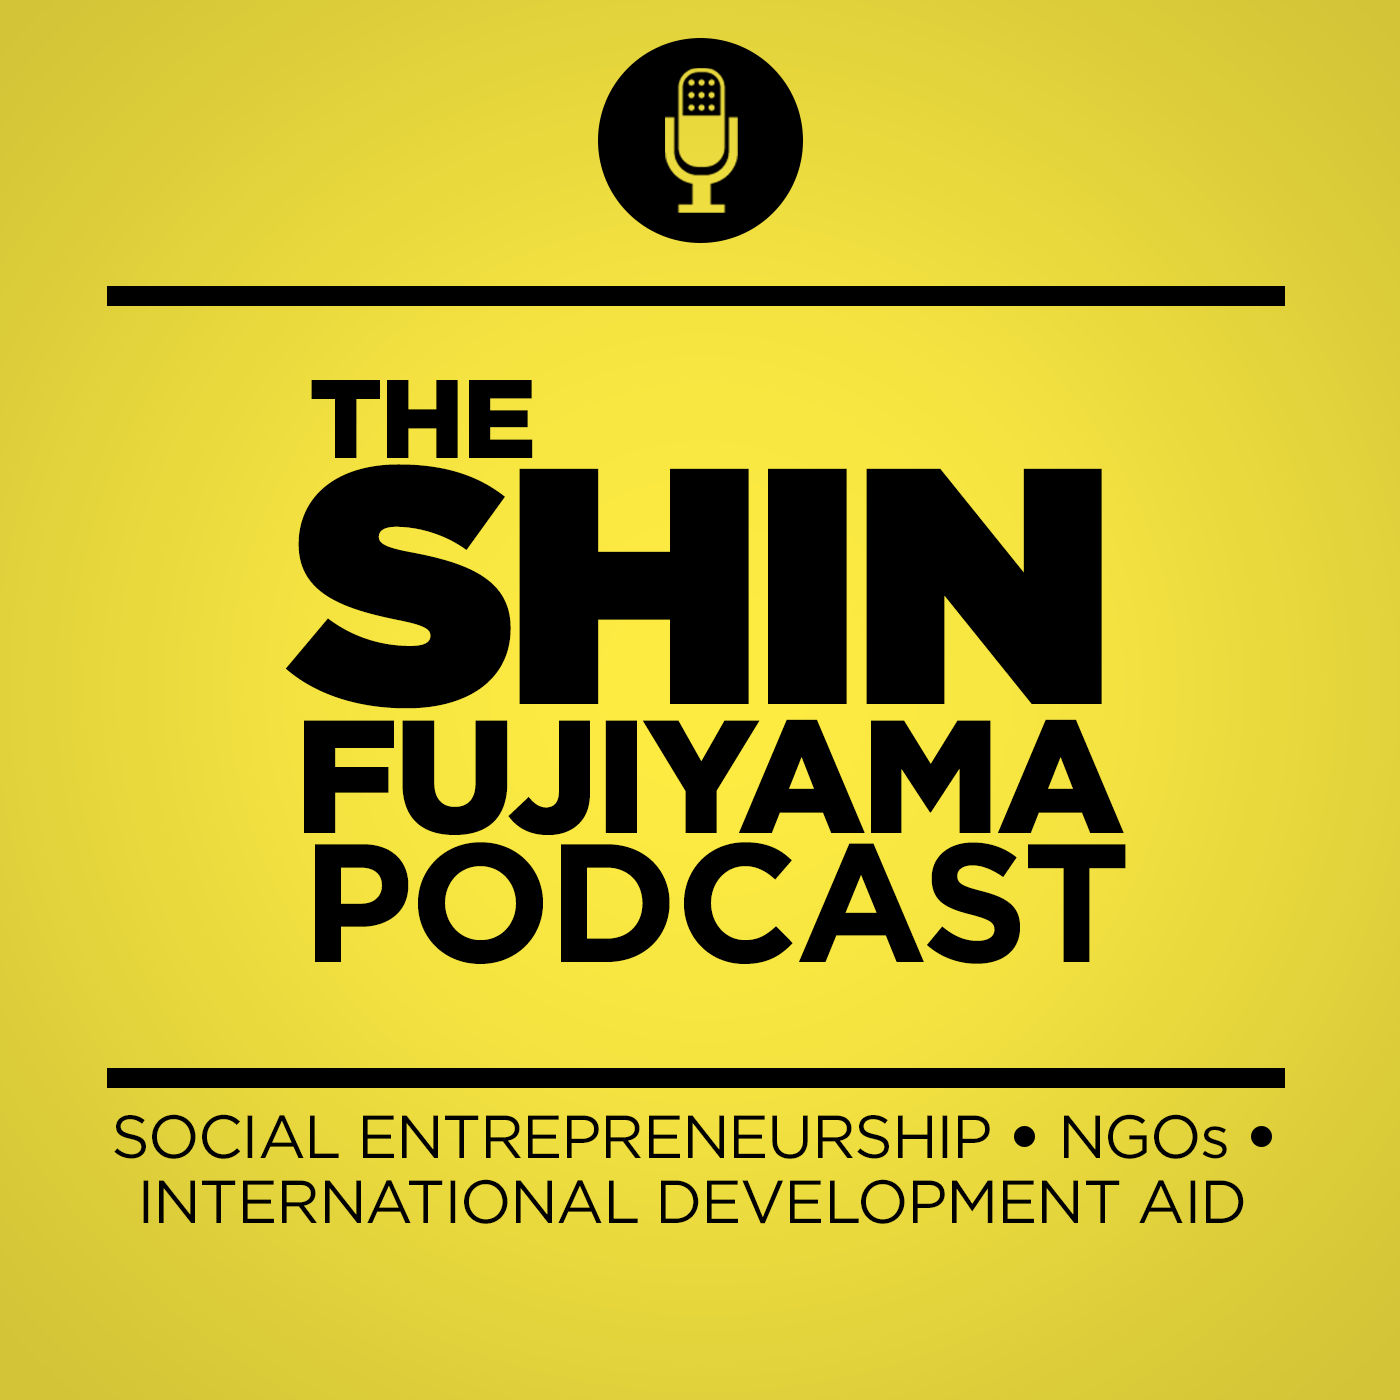 The Shin Fujiyama Podcast | Social Entrepreneurship | Nonprofit Organizations | International Development Aid | NGOs